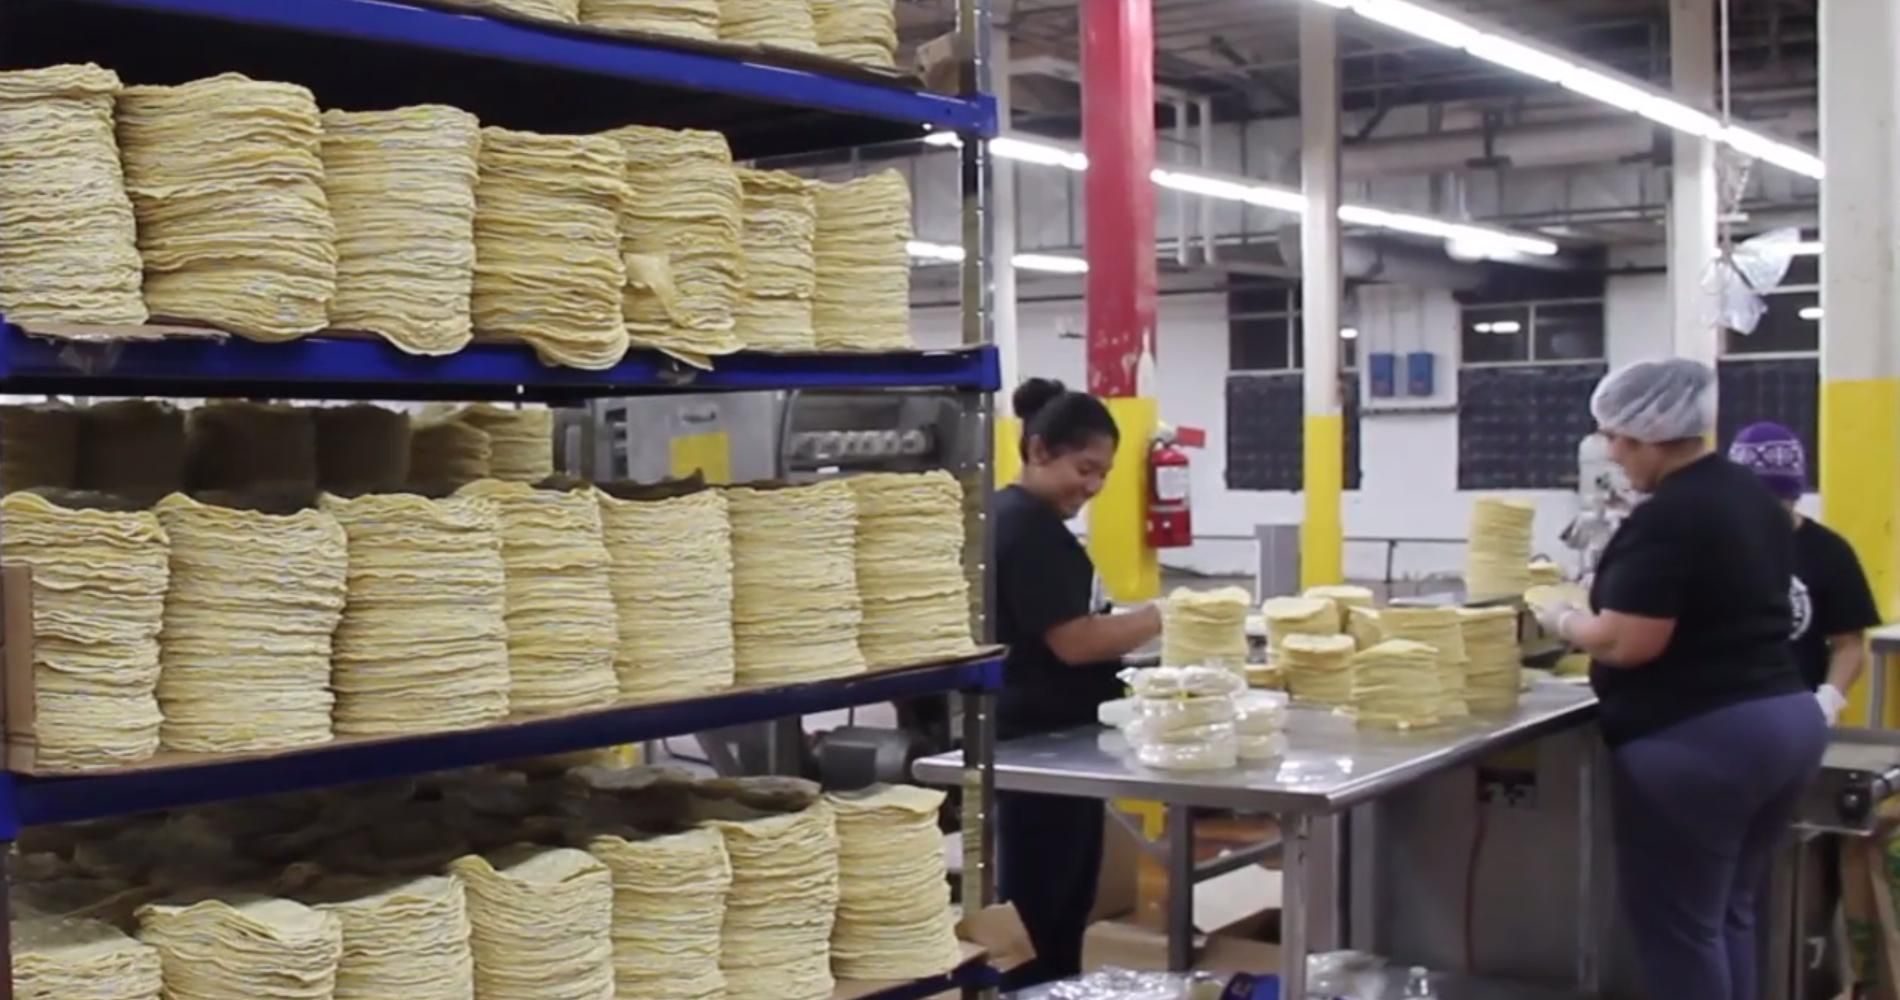 A robeson county tortilla manufacturer is ready to